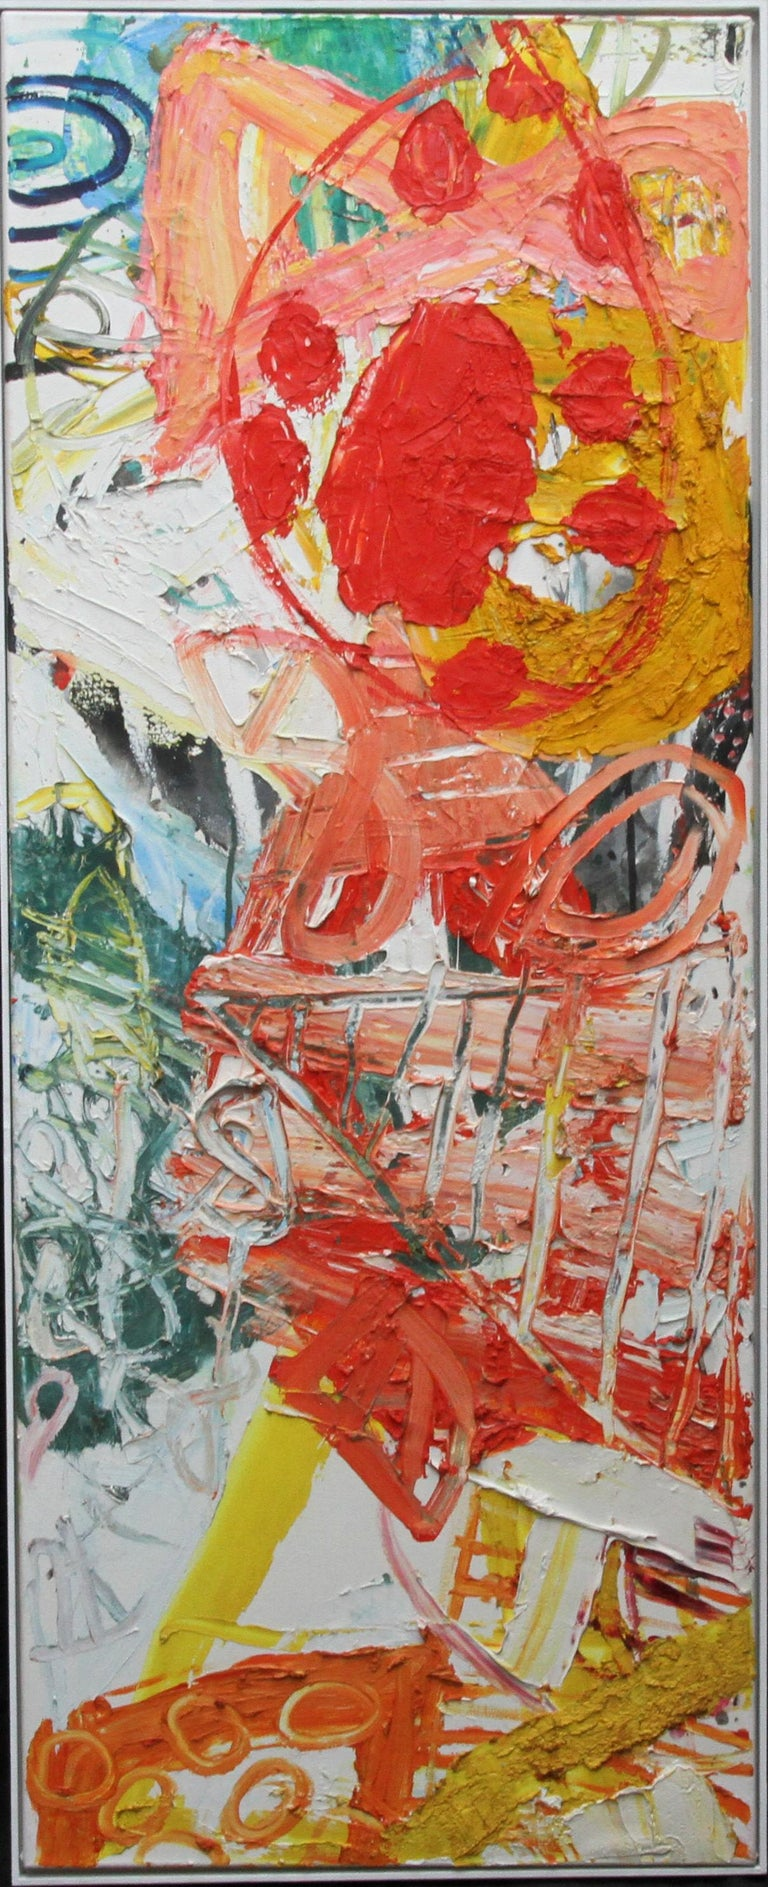 Iain Robertson Abstract Painting - Midsummer - Scottish 1998 exhibited art Abstract Expressionist oil painting